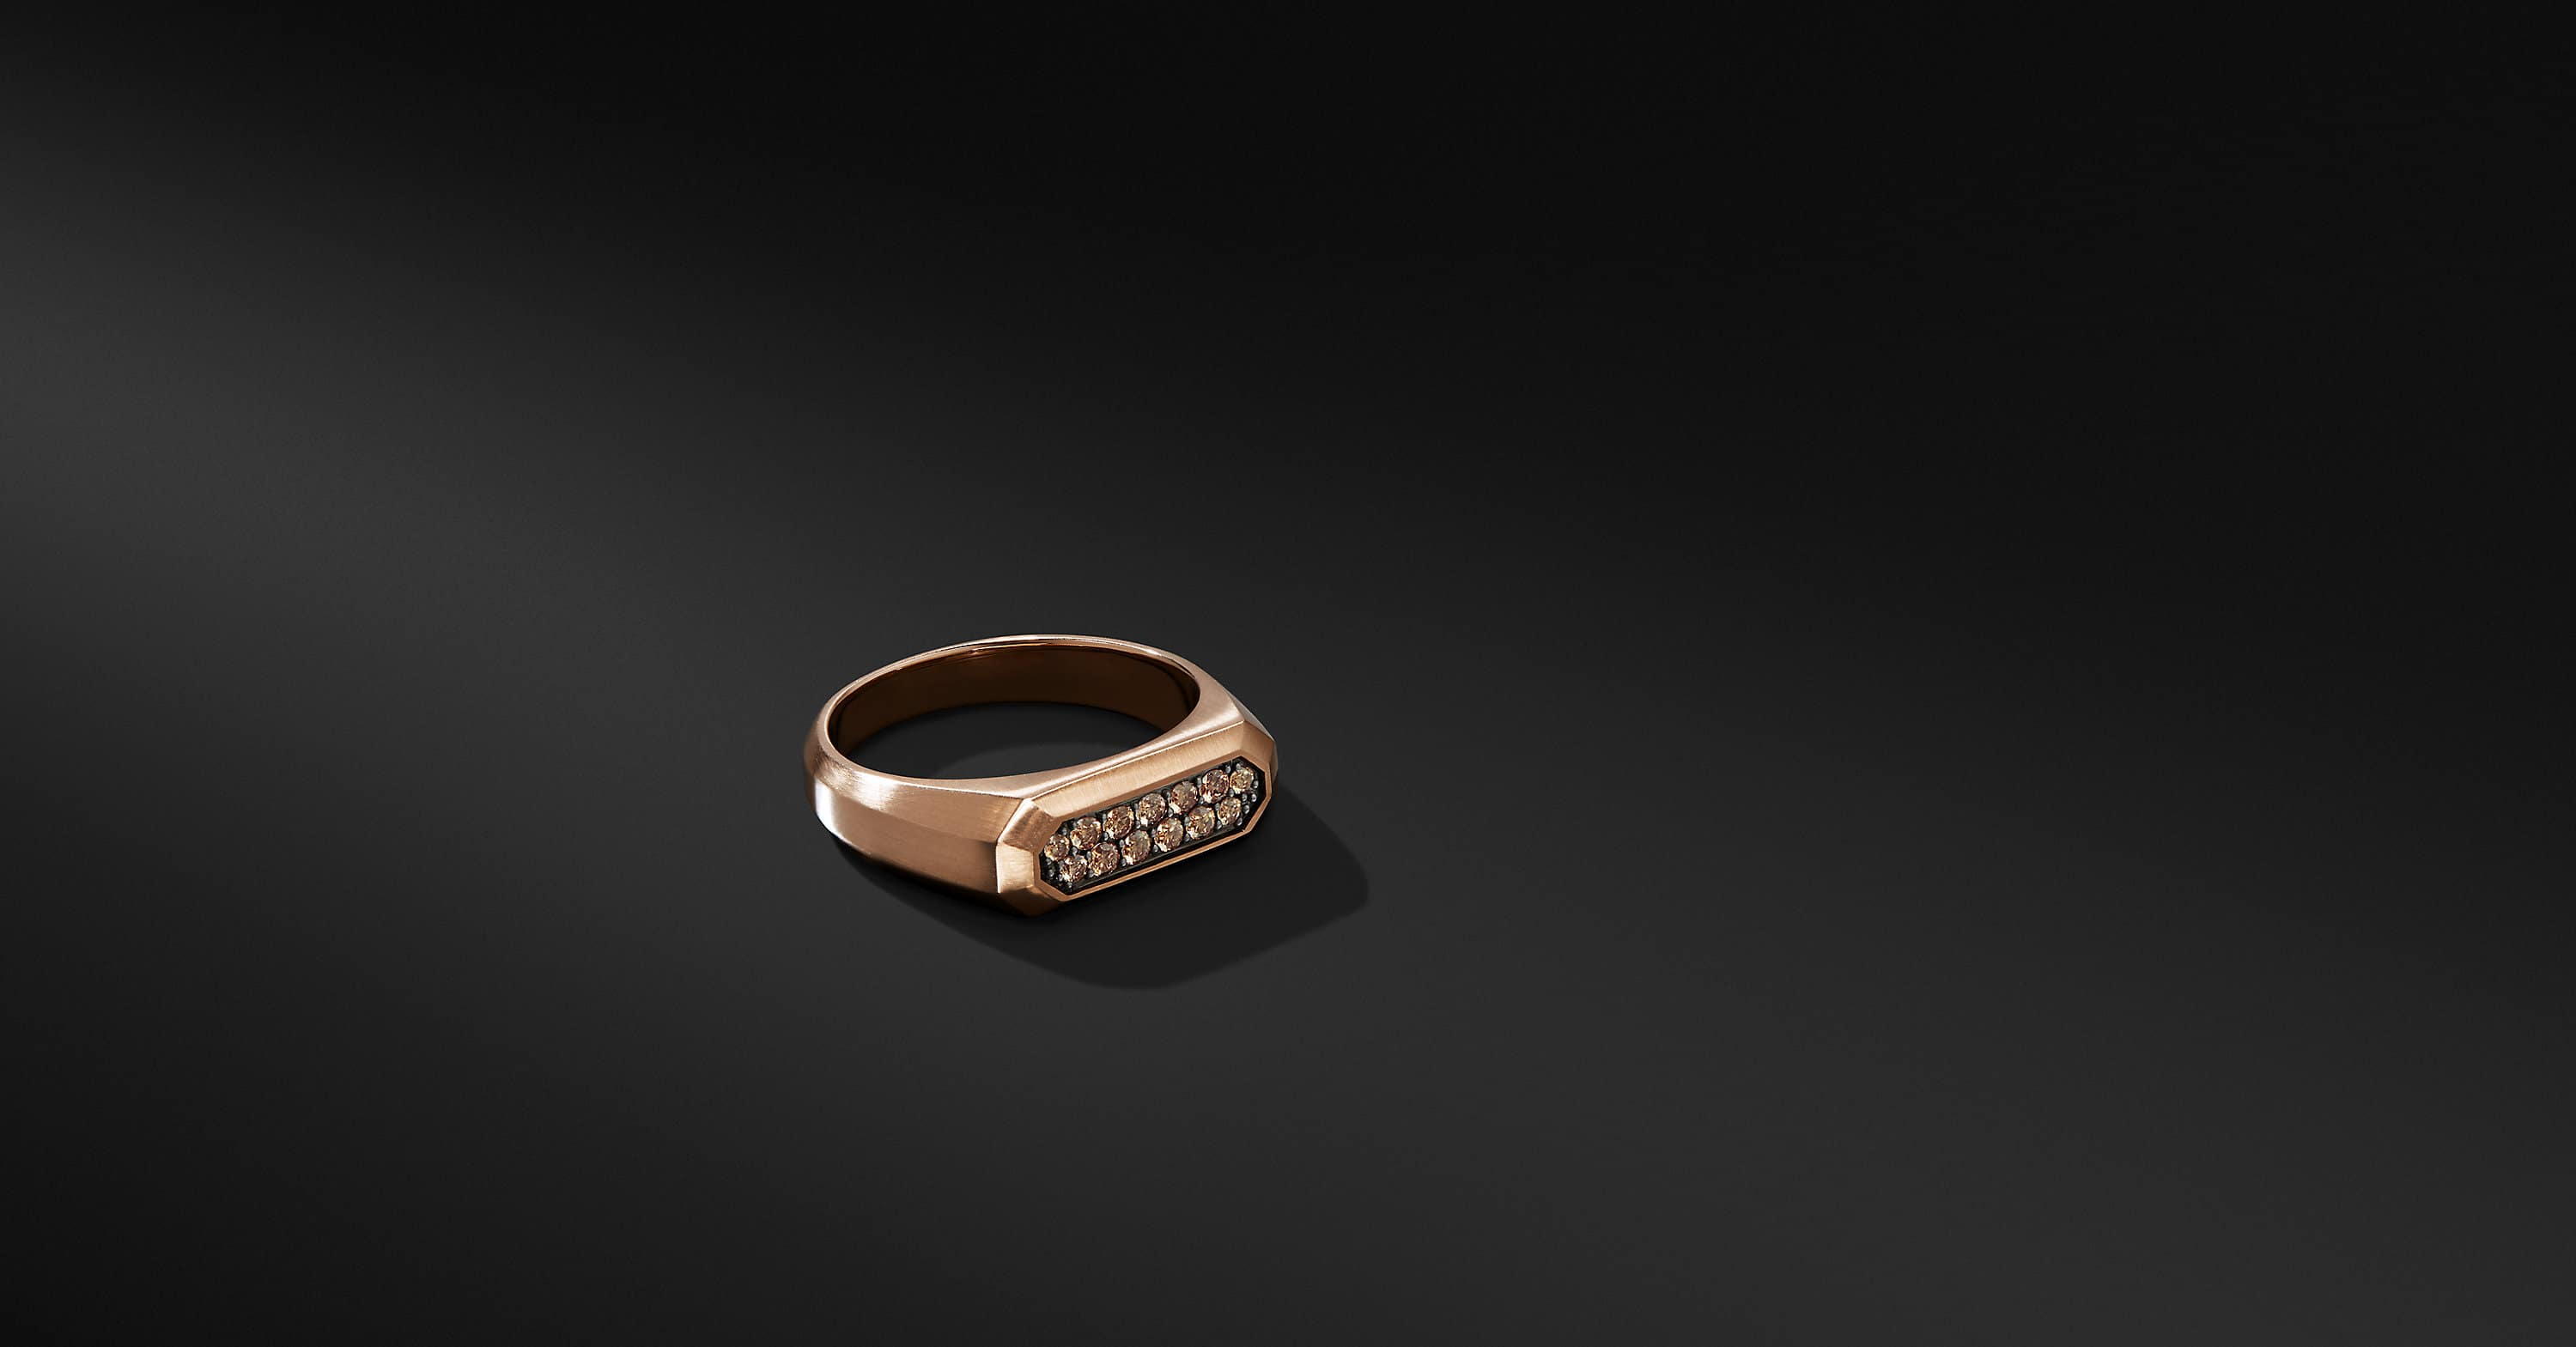 Streamline Signet Ring in 18K Rose Gold with Cognac Diamonds